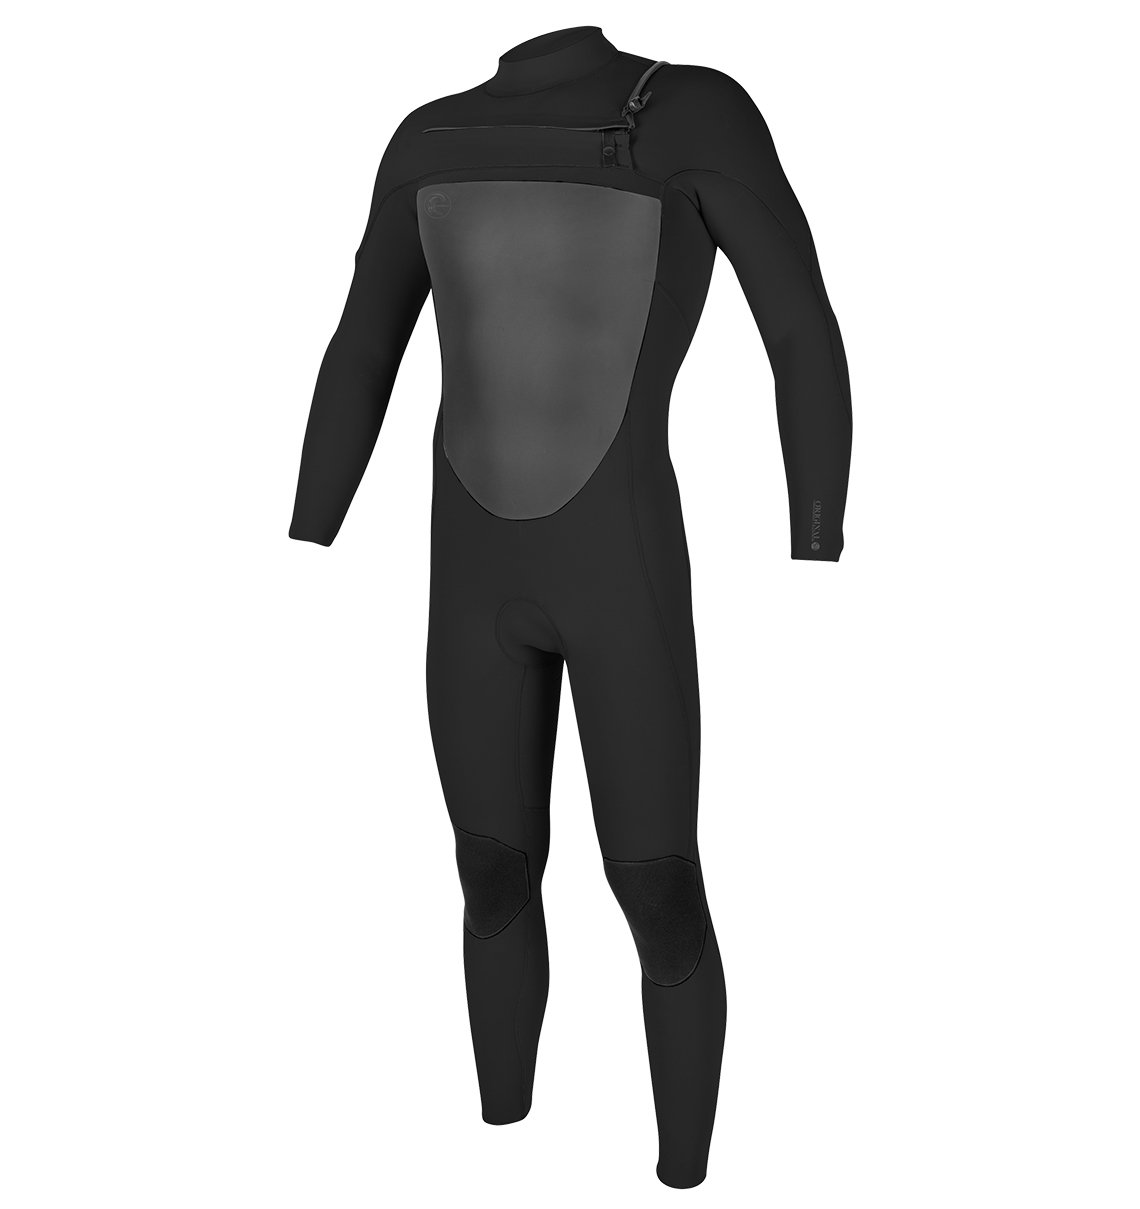 O'Neill Men's O'Riginal 4/3mm Chest Zip Full Wetsuit, Black/Black, Small by O'Neill Wetsuits (Image #1)